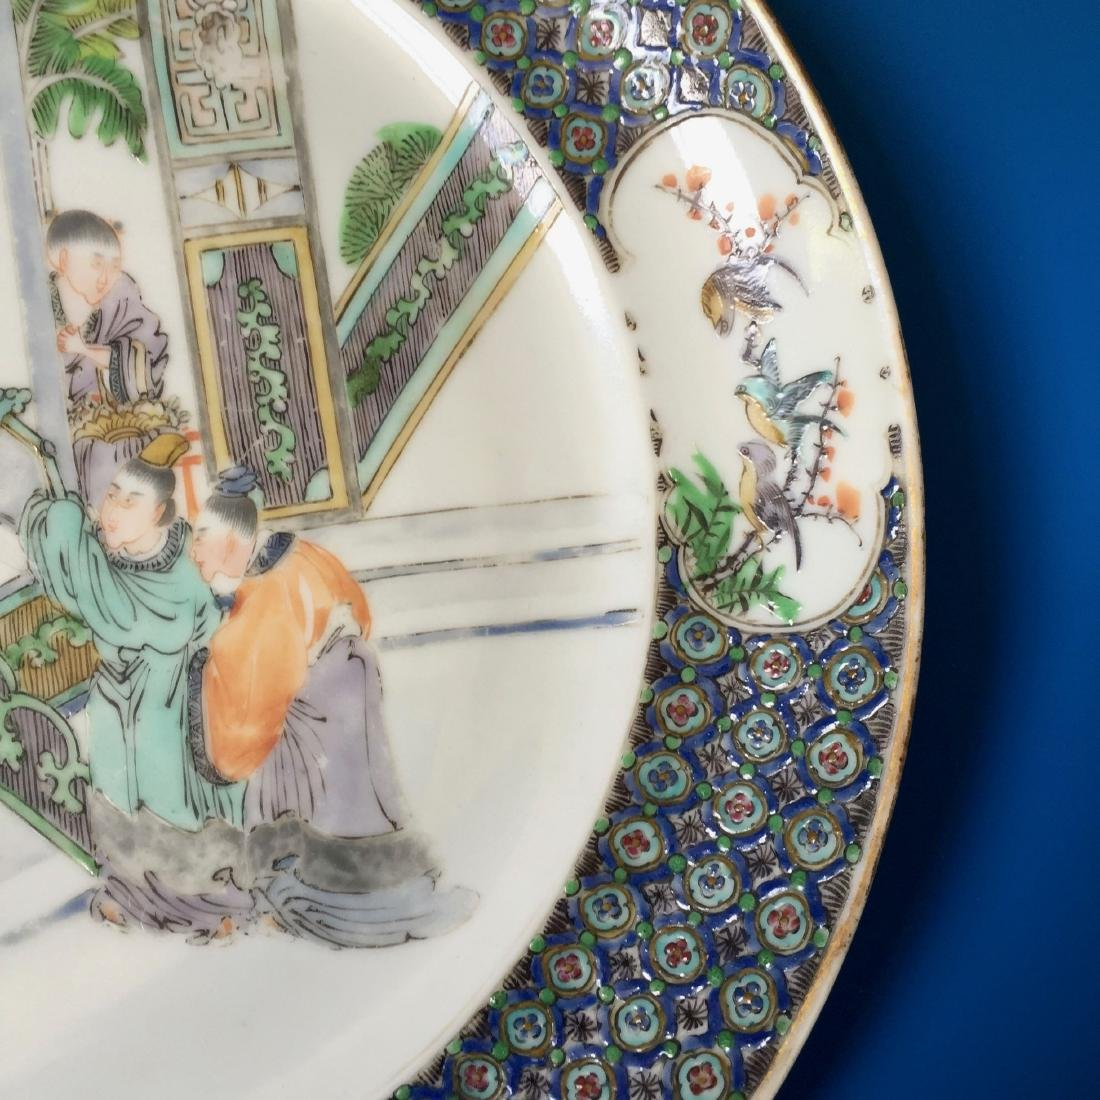 A BEAUTIFUL CHINESE ANTIQUE PLATE,19C. - 2